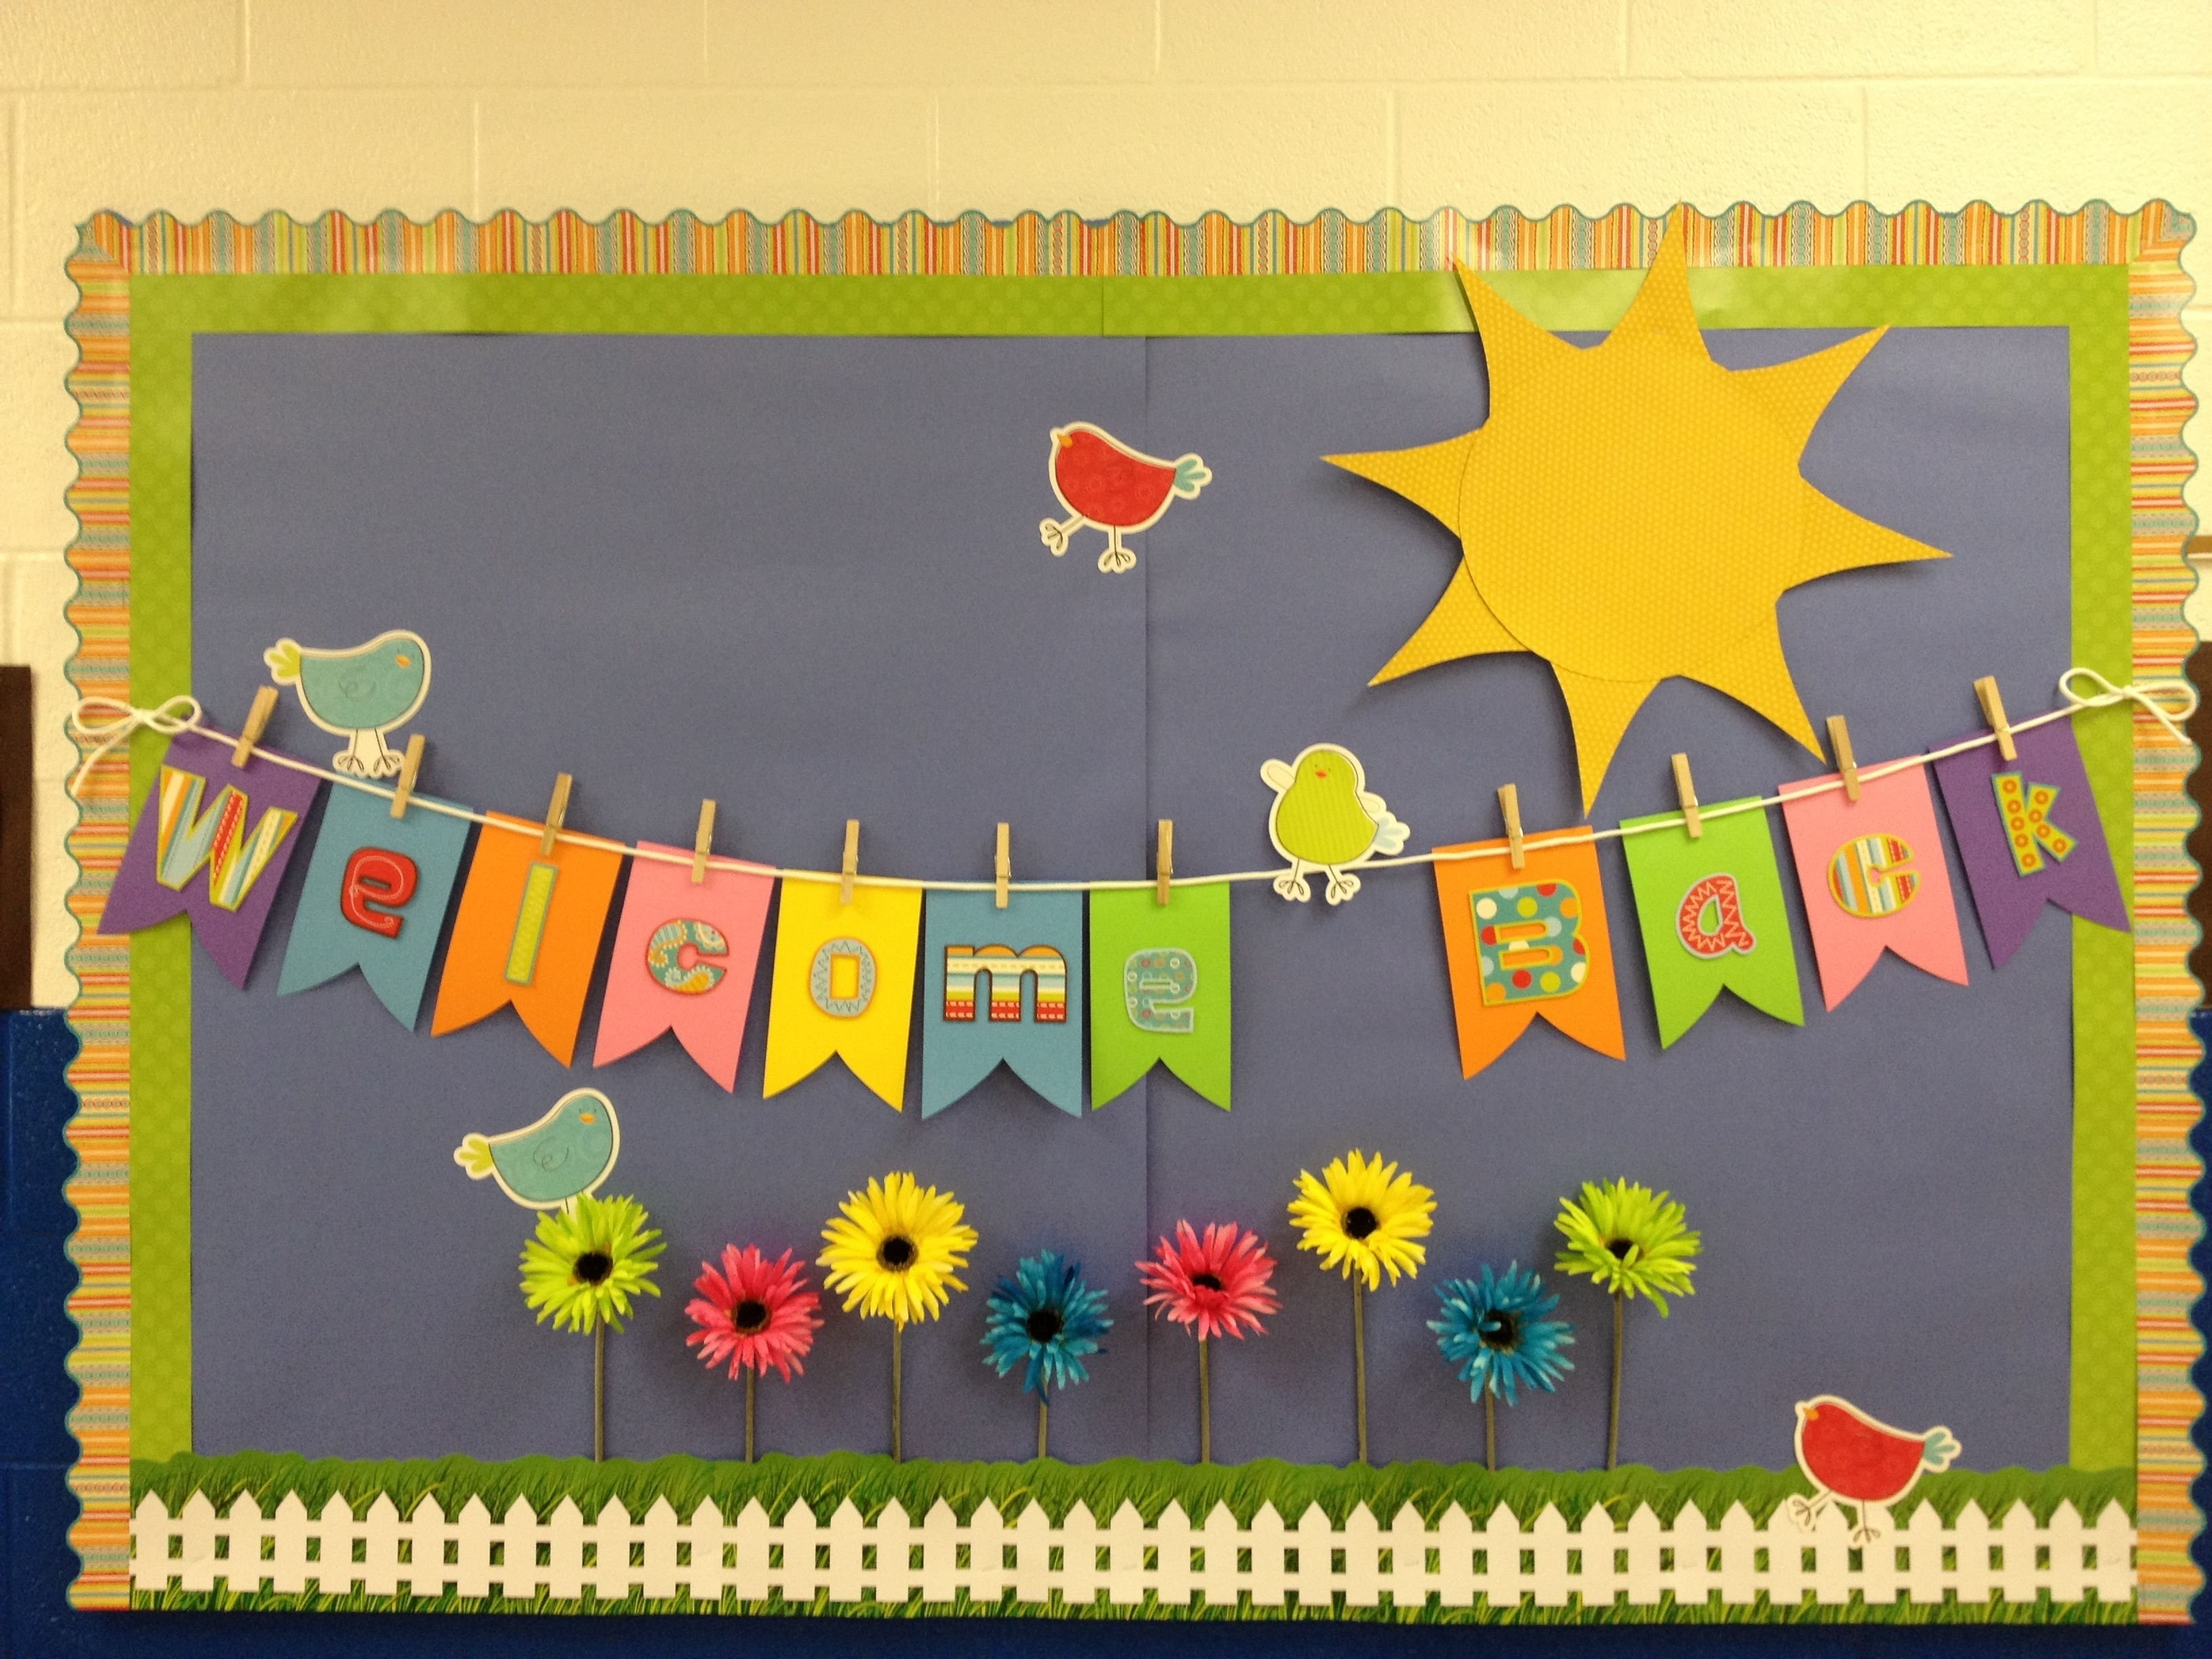 10 Stunning Welcome Back To School Bulletin Board Ideas spring theme welcome back to school bulletin boards ideas bing 5